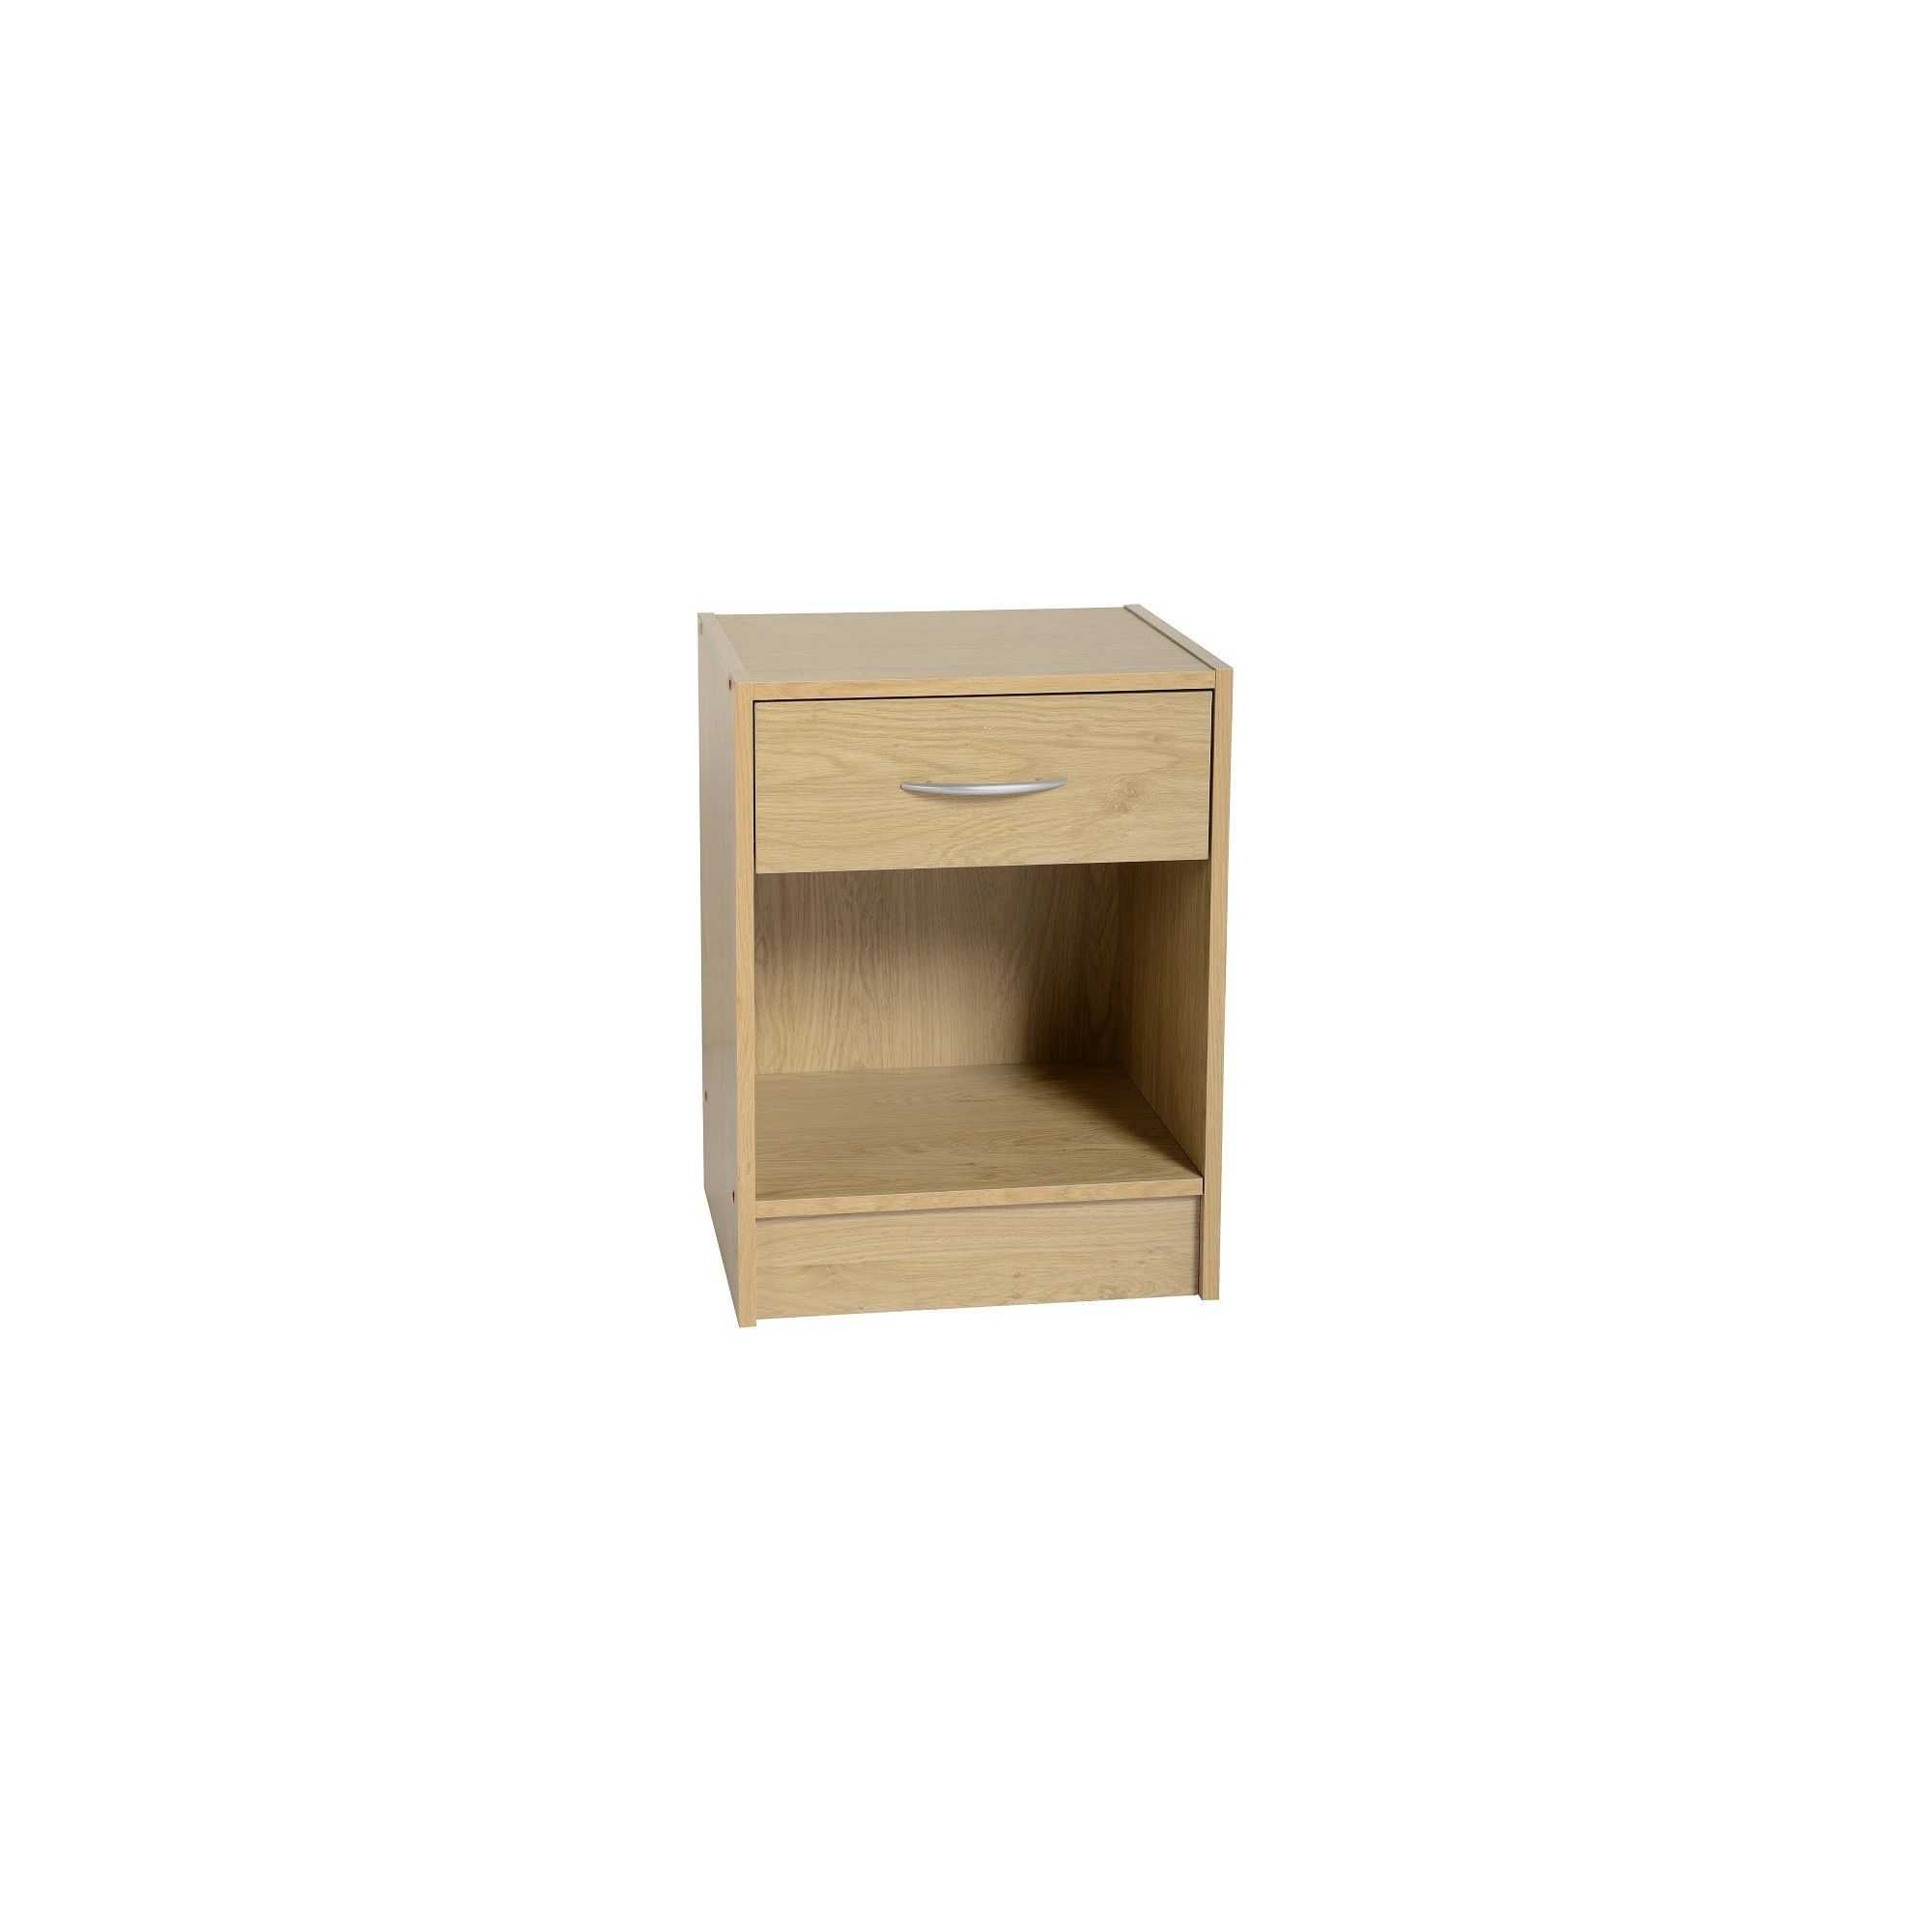 Compare Bedside Tables Chests Bedside Cabinets For Sale